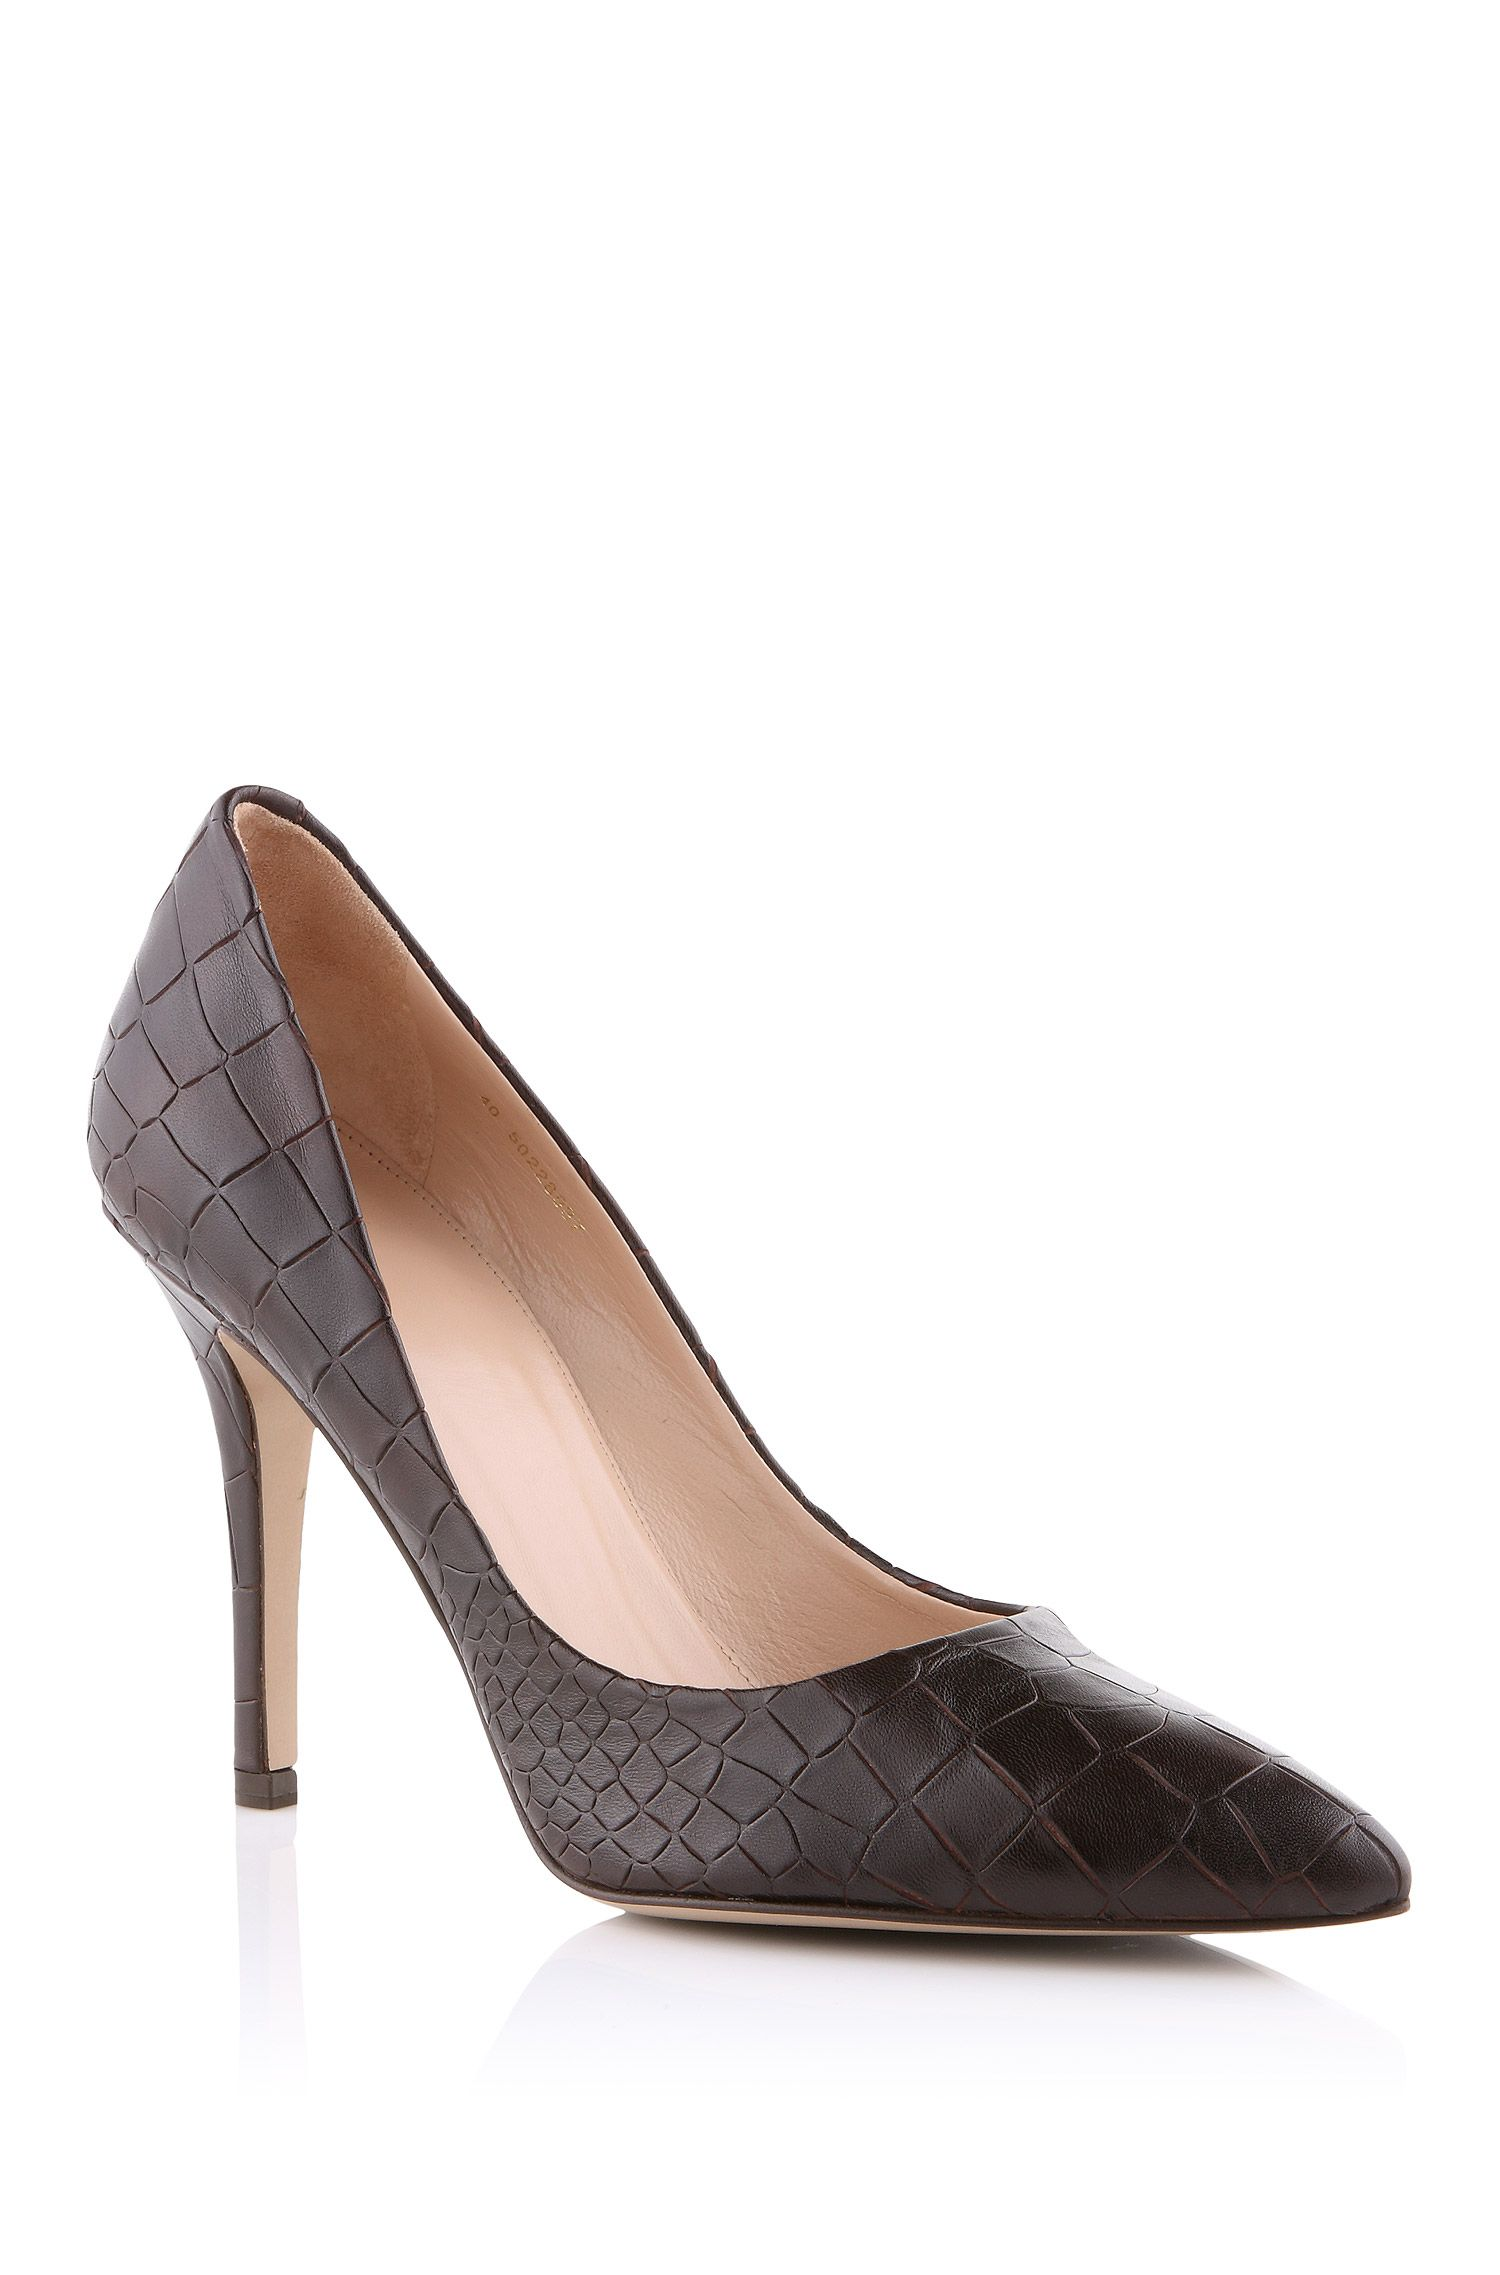 Escarpins imitation croco, Claudy